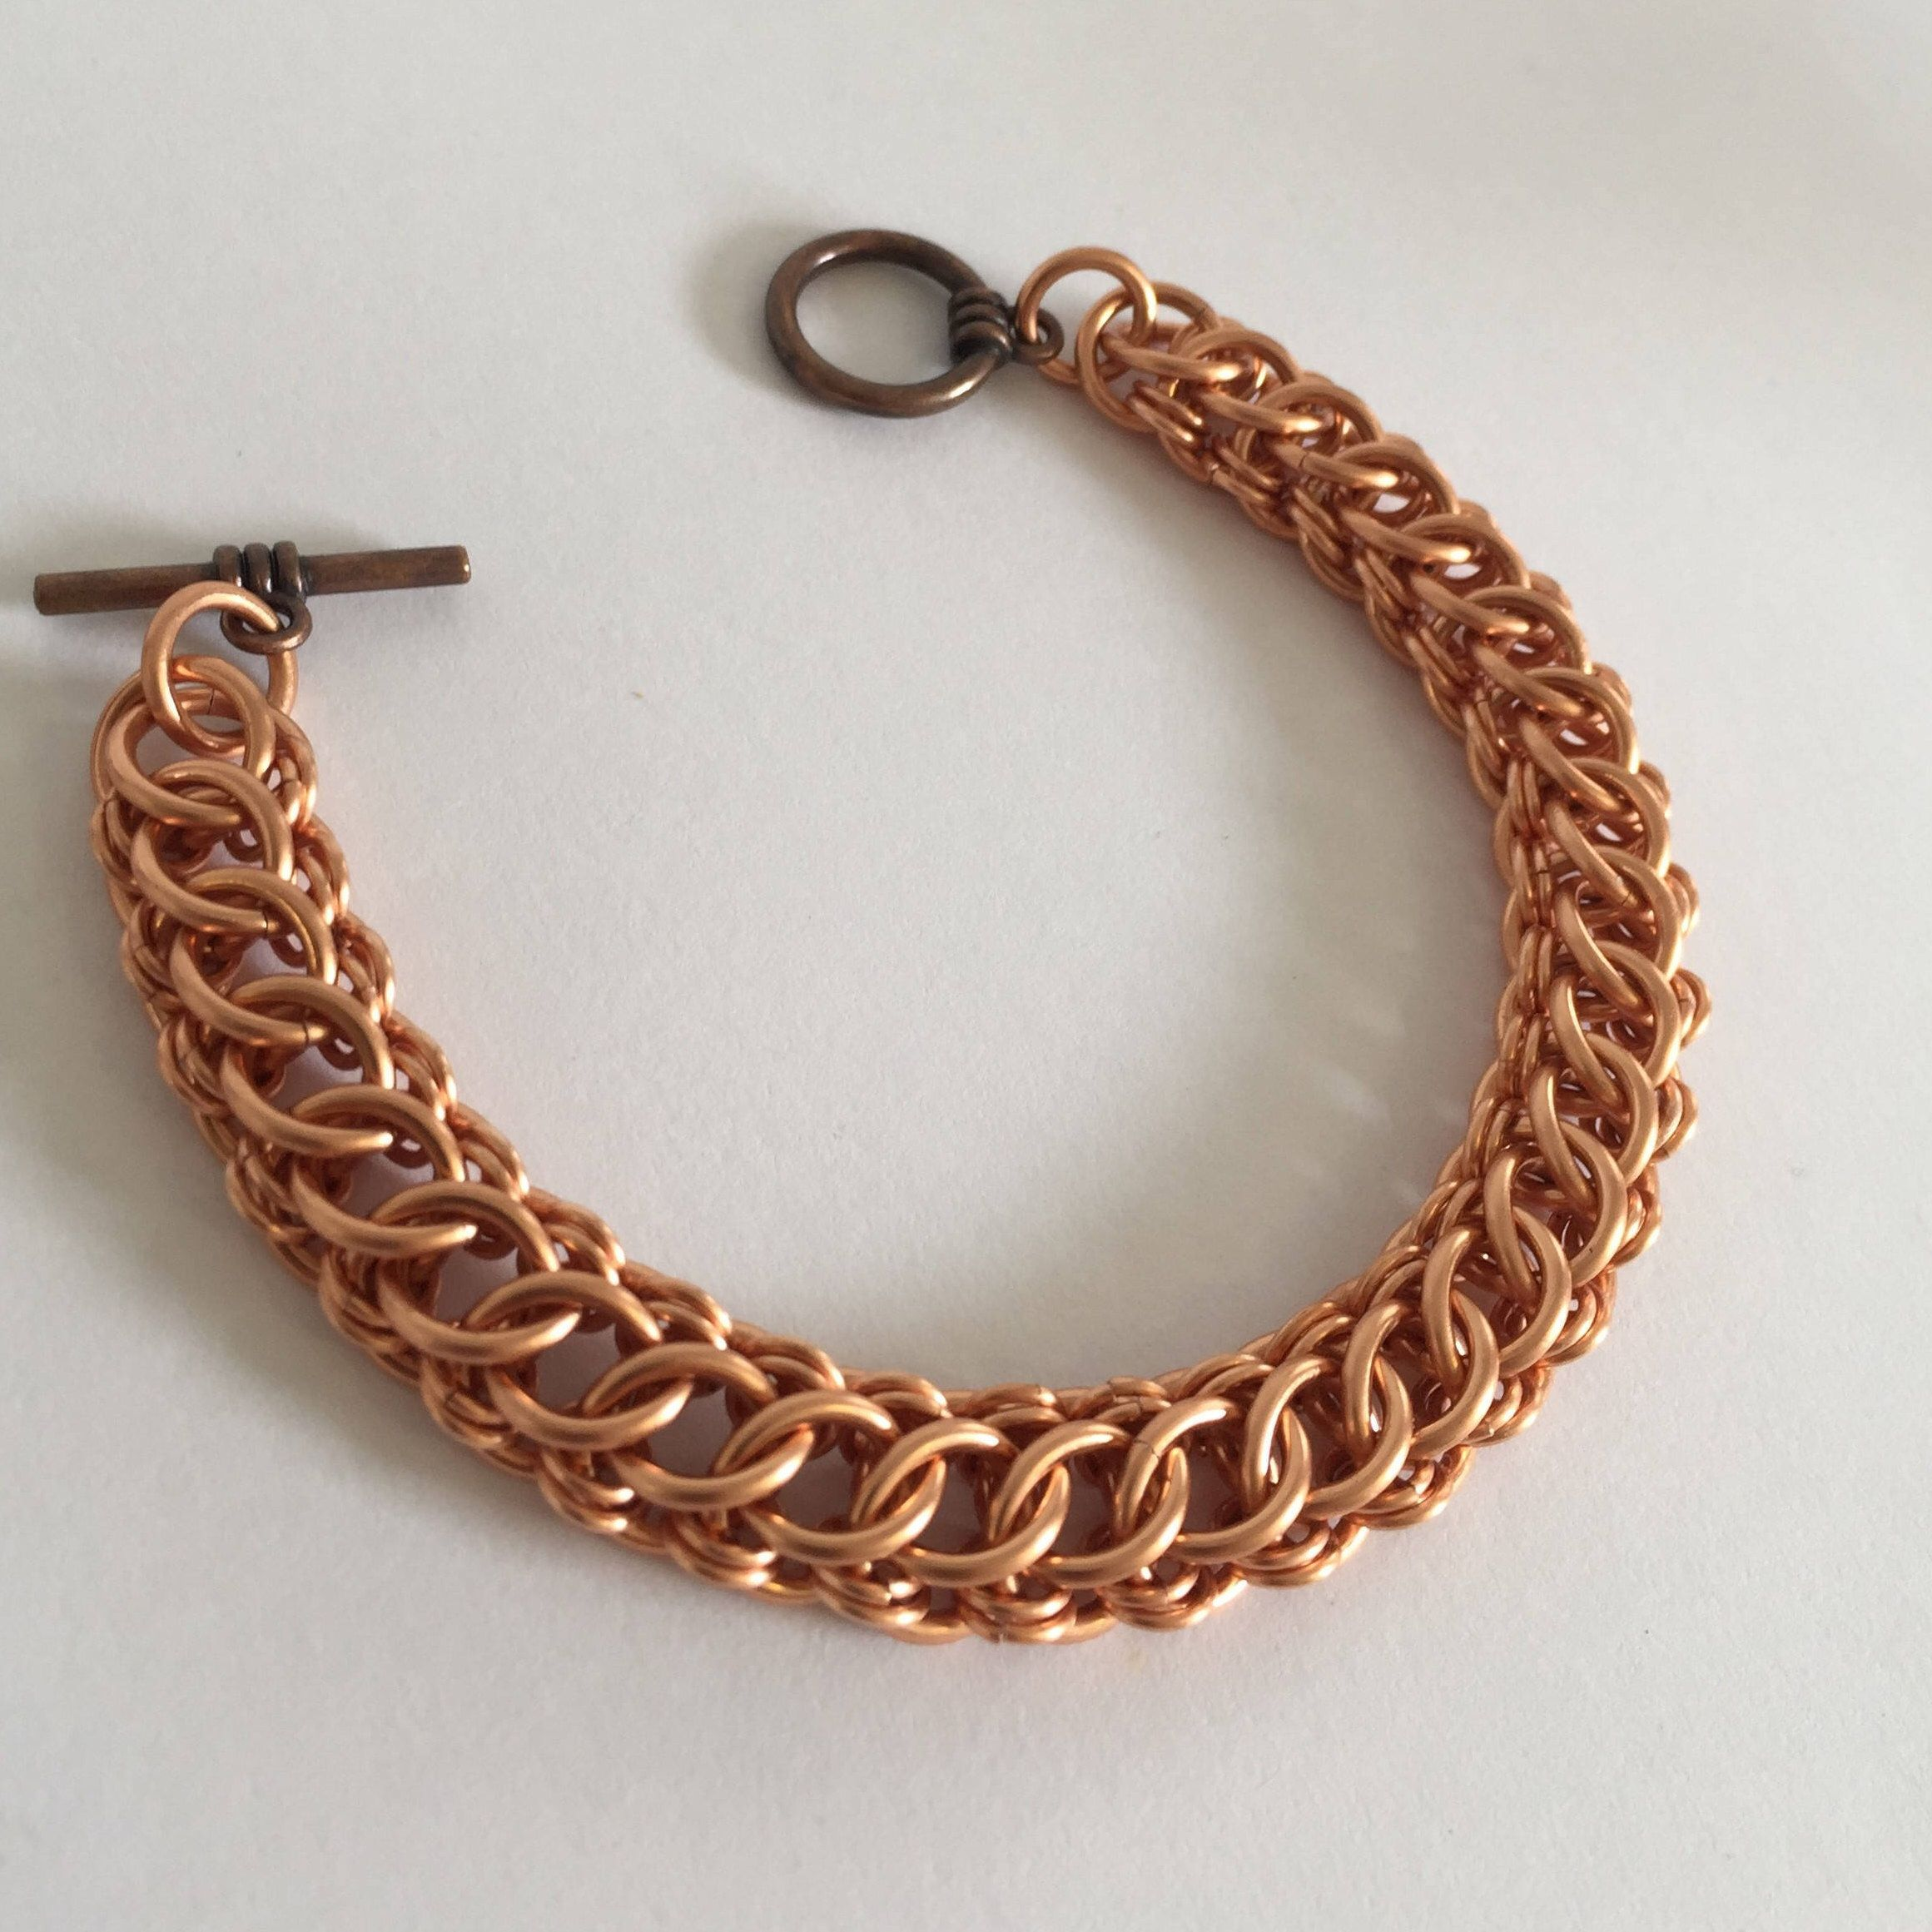 Copper Bracelet Men, Copper Chainmaille, Male Bracelet, Copper Chain Link  Bracelet, Mens Metal Jewelry, Male Birthday Gift In Copper